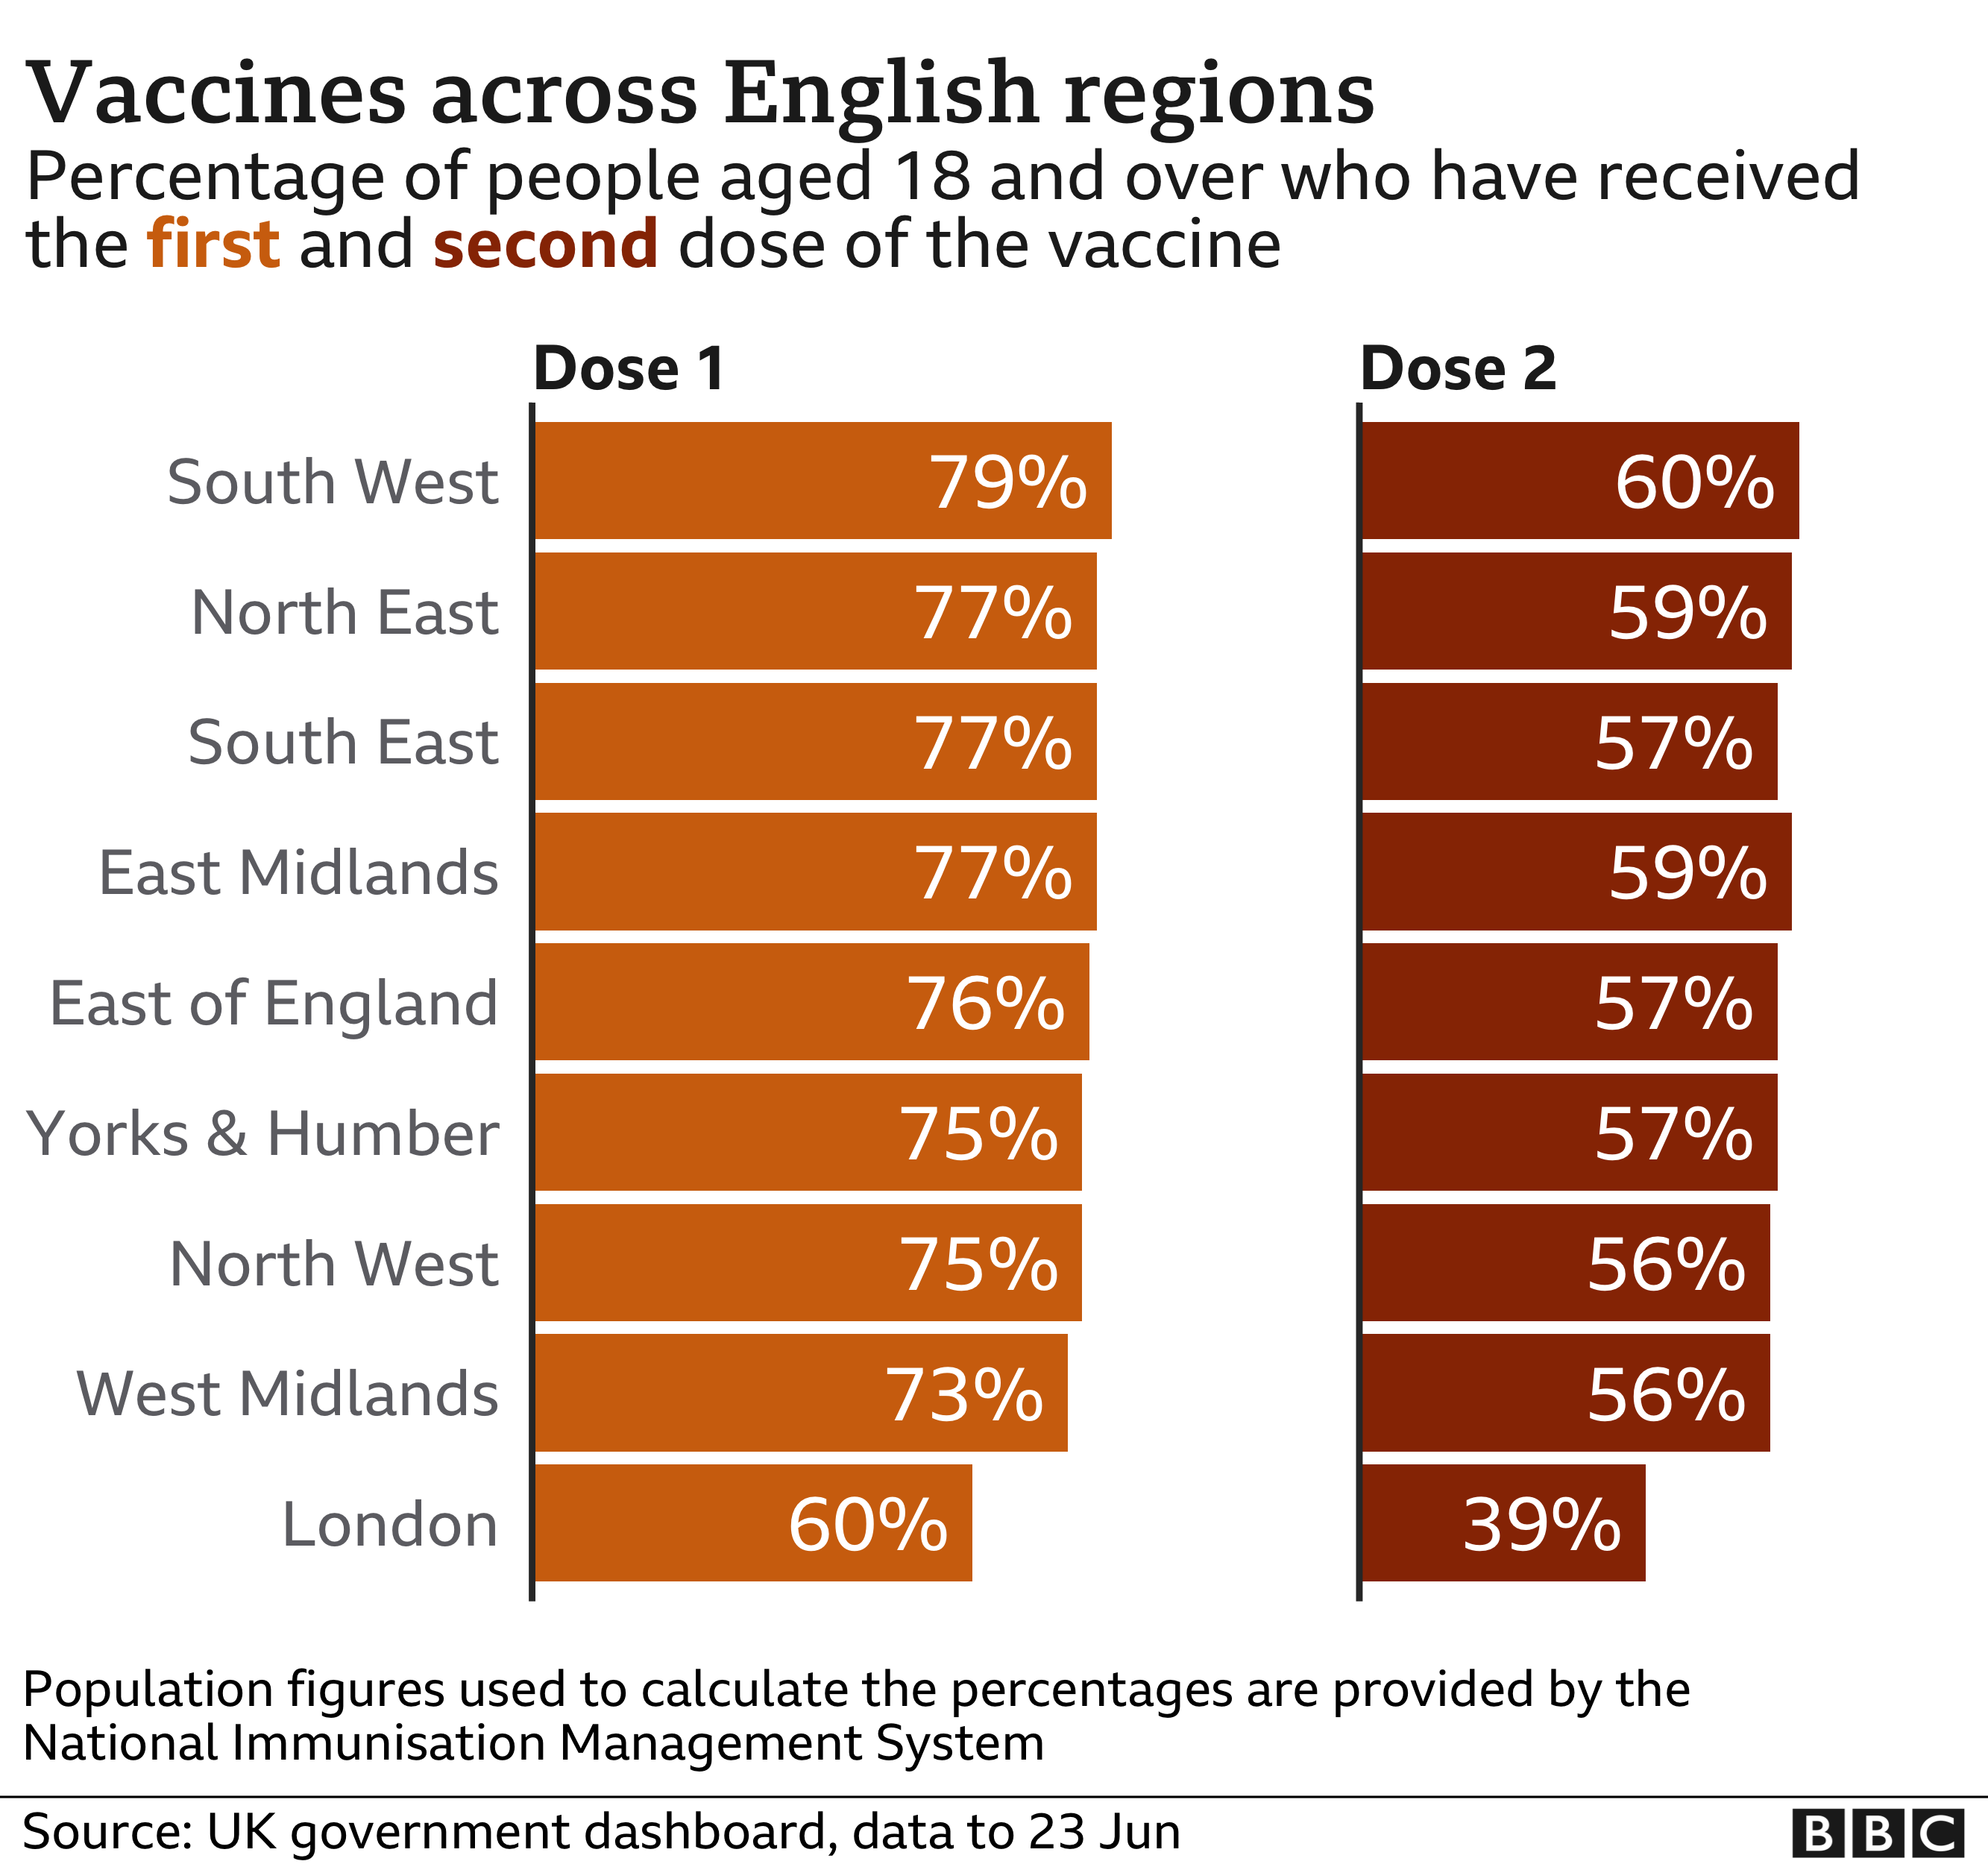 Chart of vaccine take up by English region - 79% of those aged 18 or over in the South West have received one dose of the vaccine, compared with 60% in London